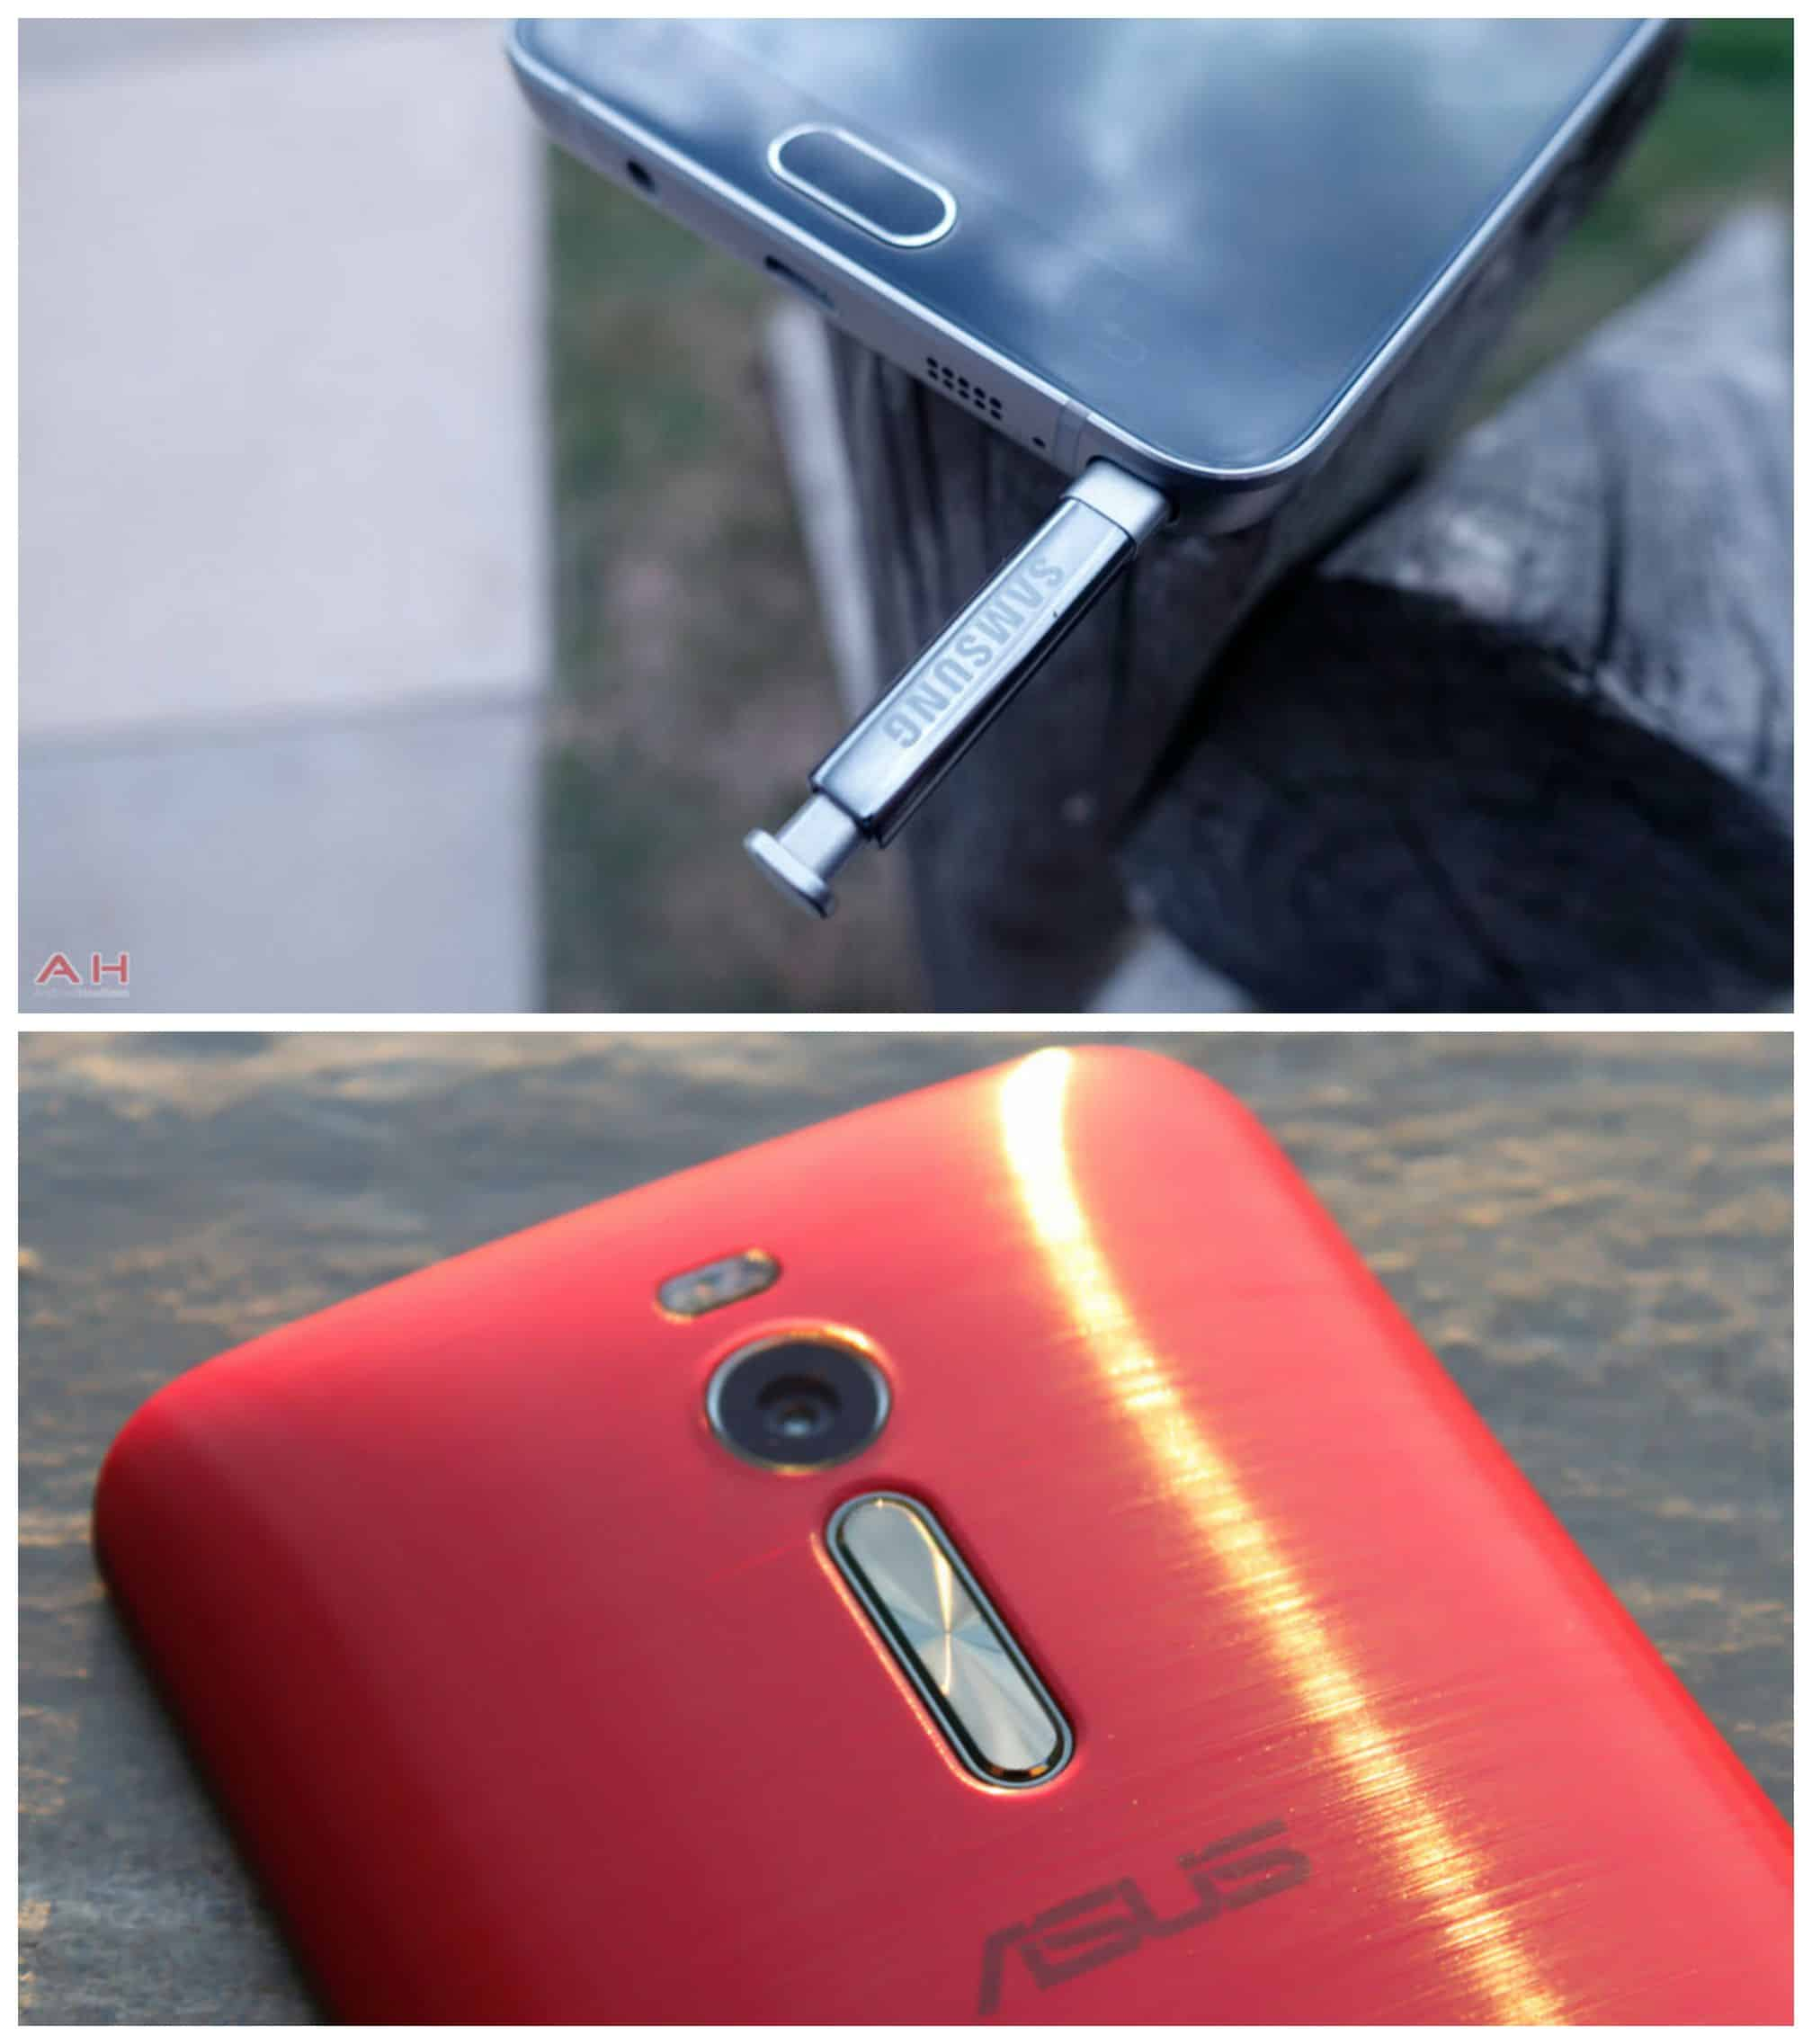 ASUS ZenFone 2 and Note 5